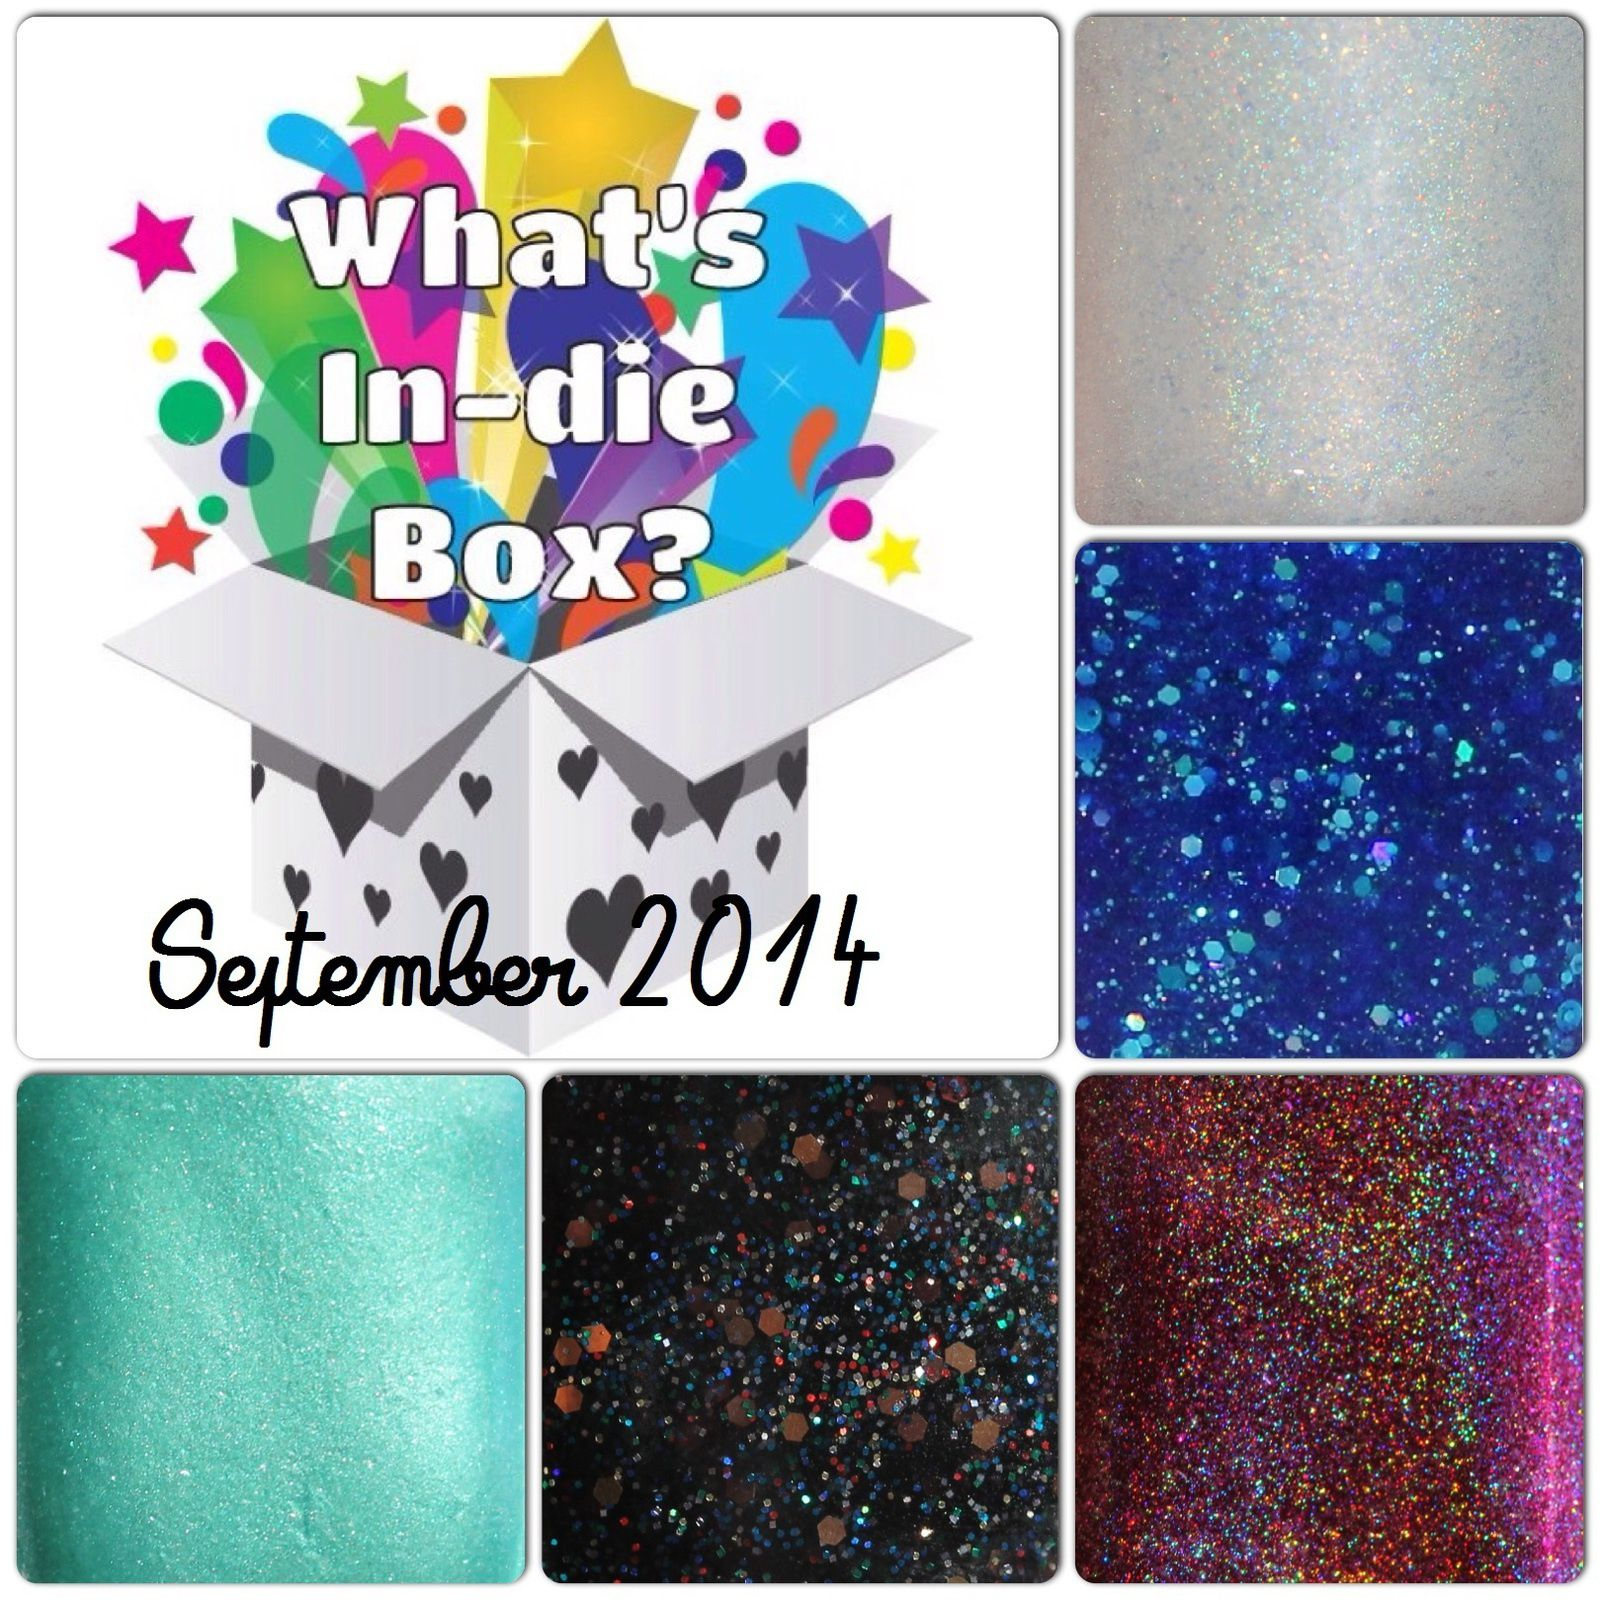 What's Indie Box September 2014 - Spectacular Space